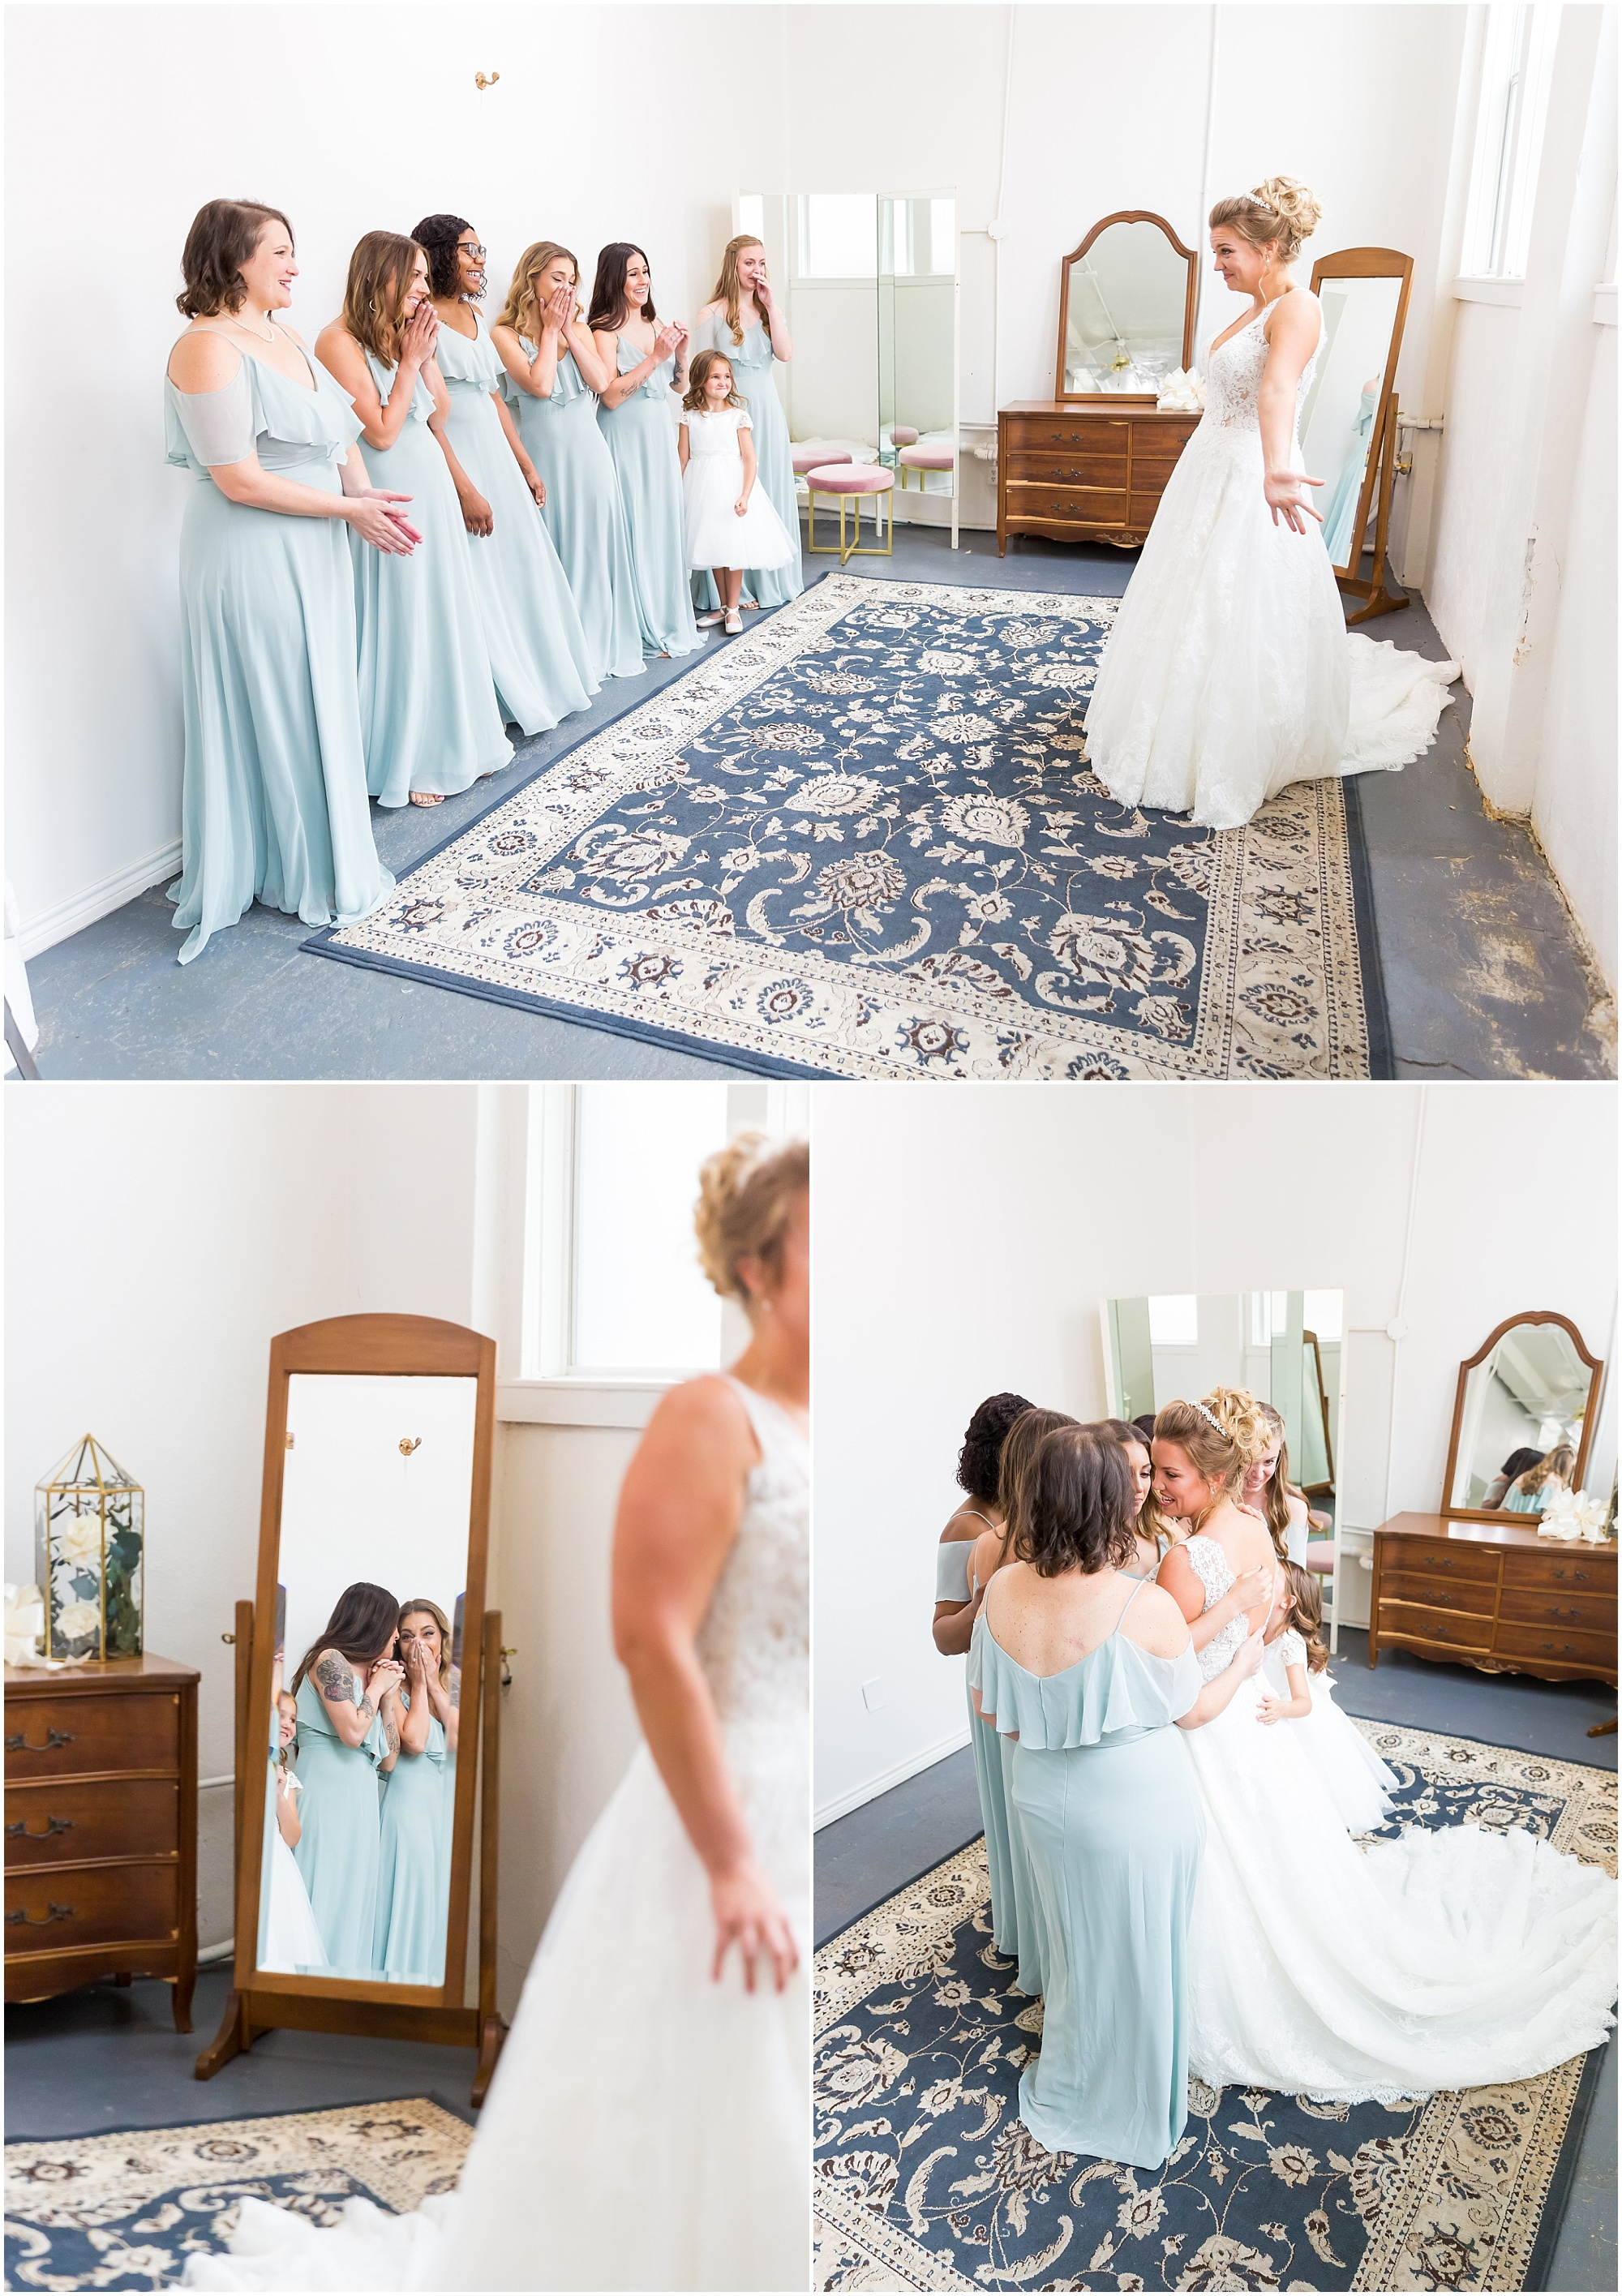 Bridesmaids react with squeals, gasps and tears when they see the bride in her dress for the first time in the bridal suite at The Eagle Historic Warehouse - Jason & Melaina Photography - www.jasonandmelaina.com